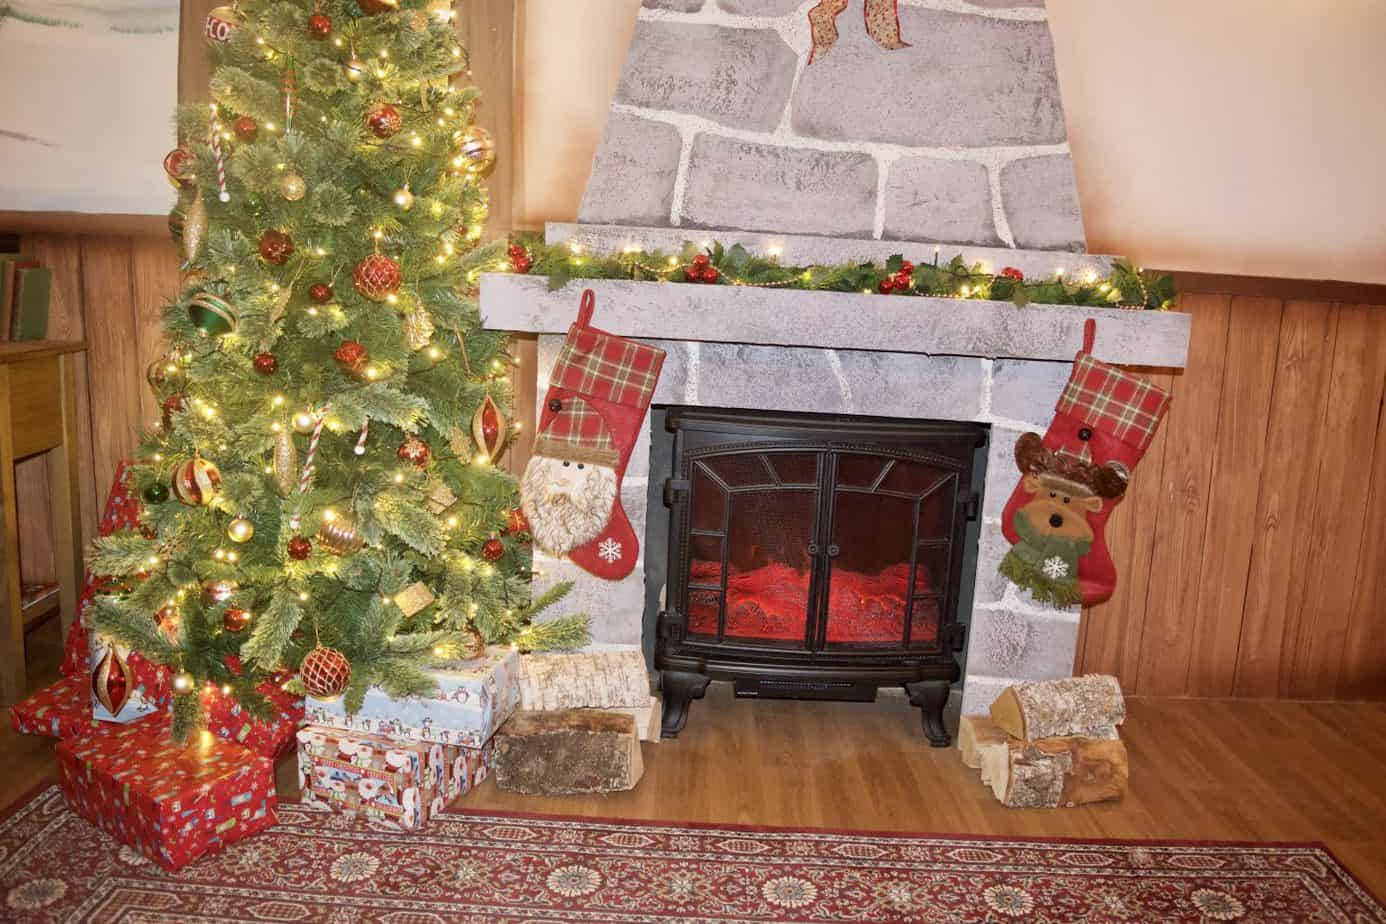 The roaring fire and tree in the Santas Grotto after our Jingle Bells: The Santa Claus Experience